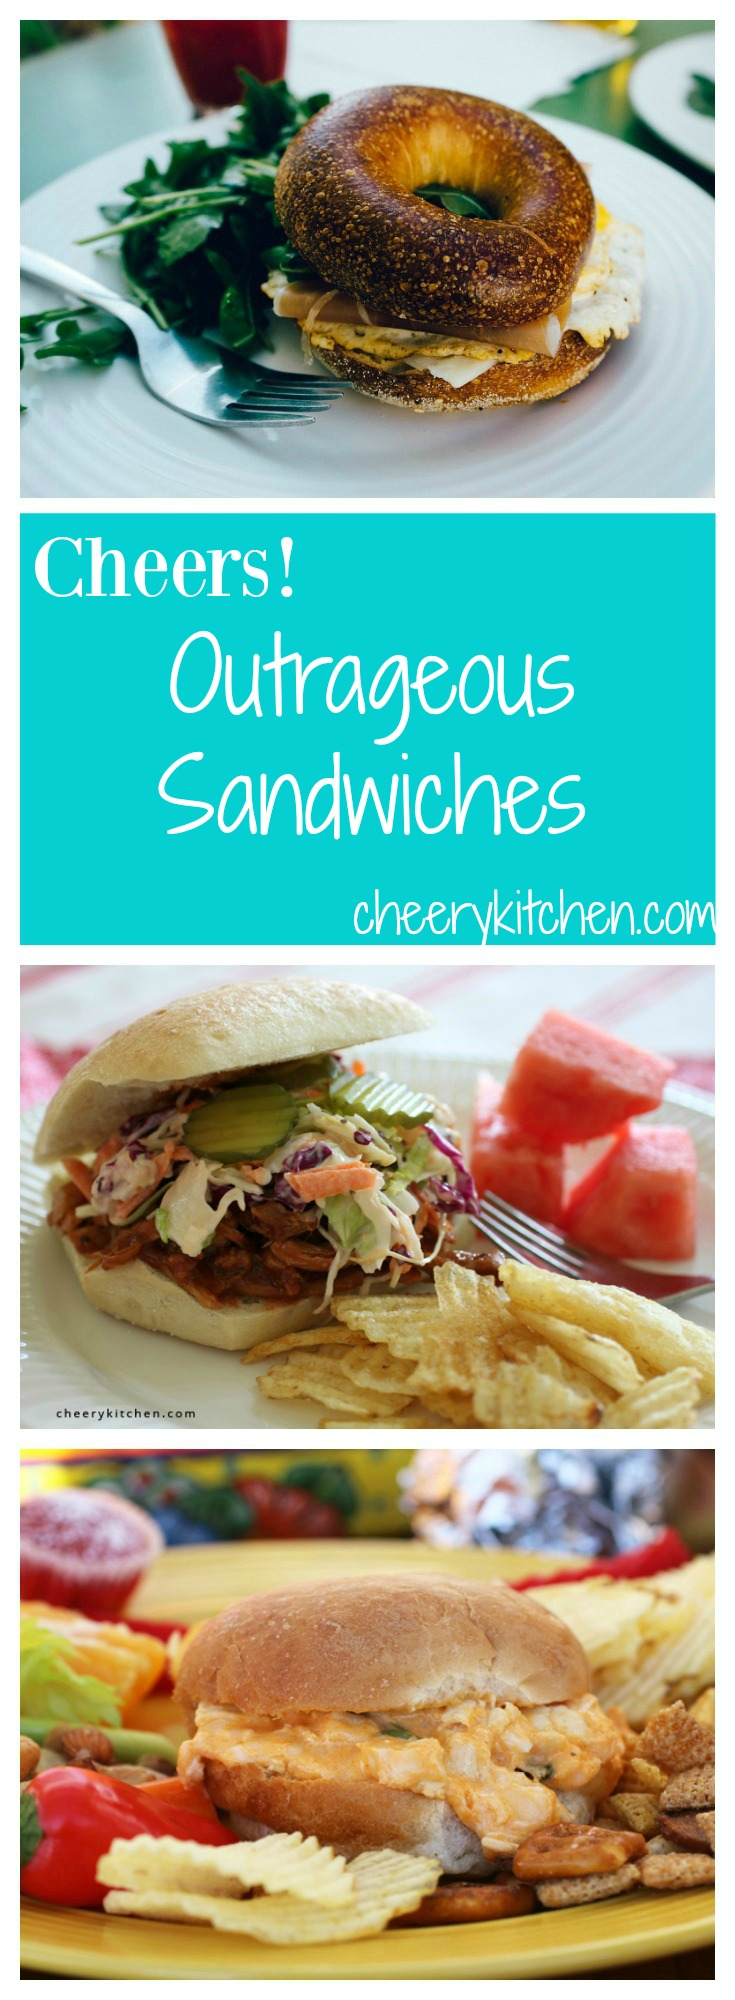 Cheers! Outrageous Sandwiches - Cheery Kitchen